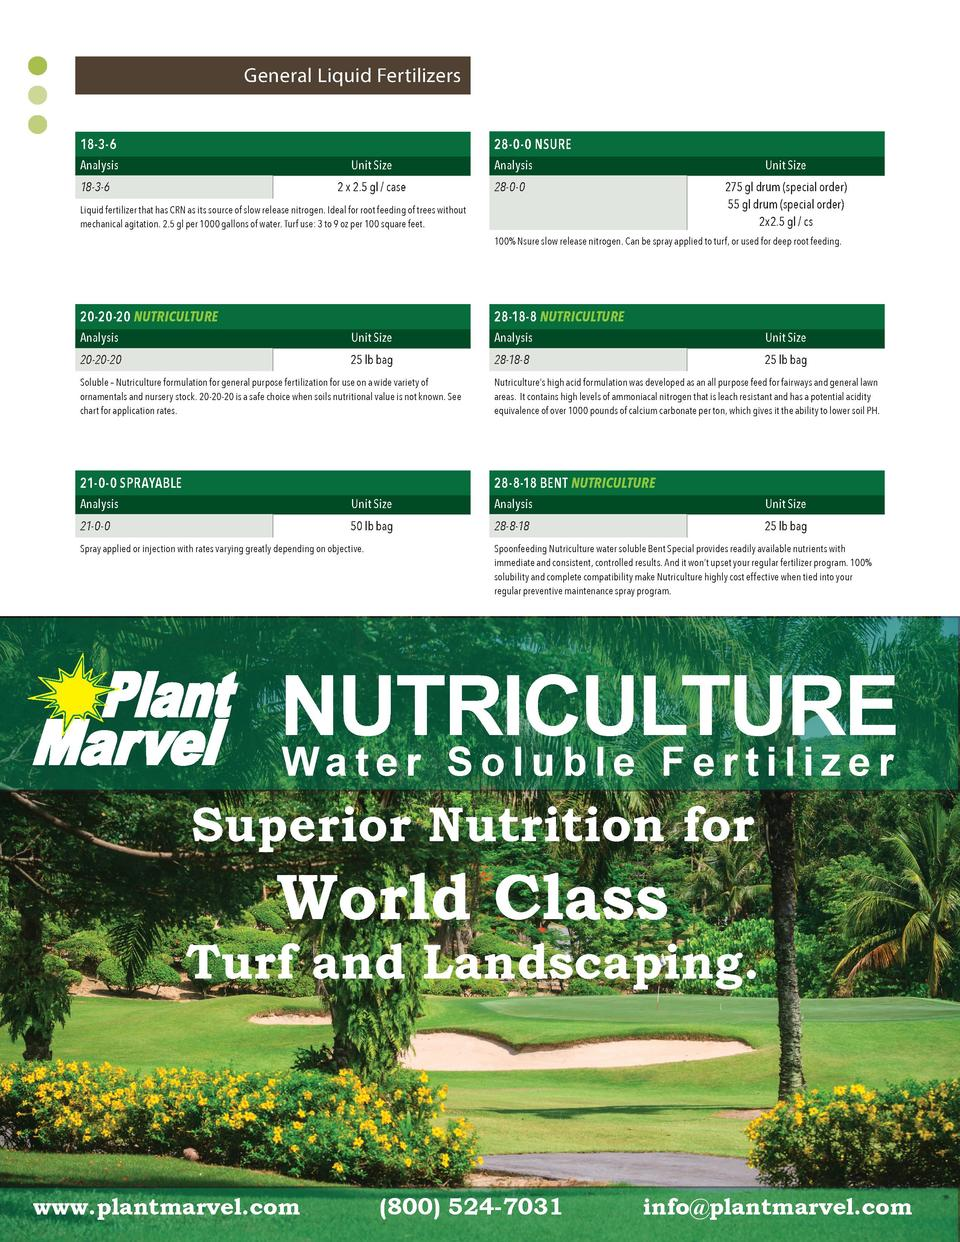 General Liquid Fertilizers 28-0-0 NSURE  18-3-6 Analysis  Unit Size 2 x 2.5 gl   case  18-3-6  Analysis  Unit Size 275 gl ...